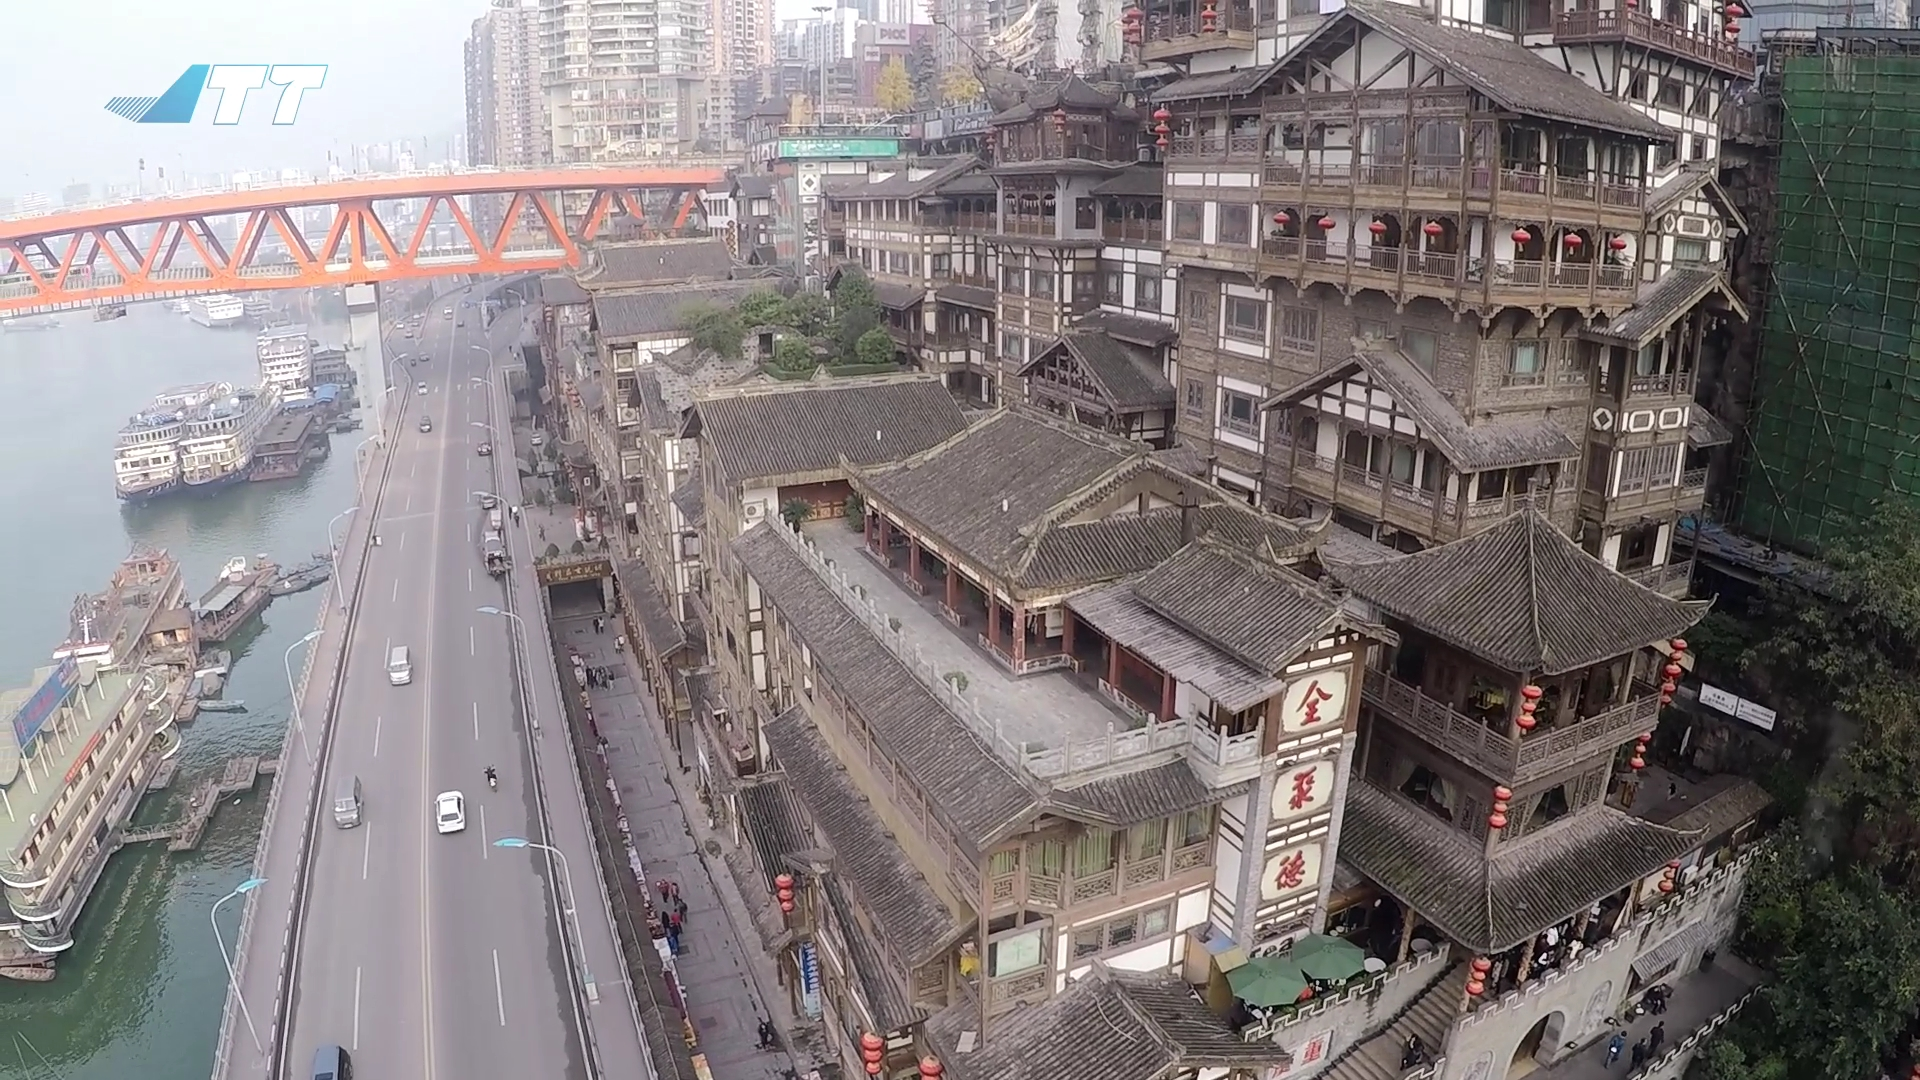 Unmanned aerial vehicle of Chongqing, Yuzhong, China